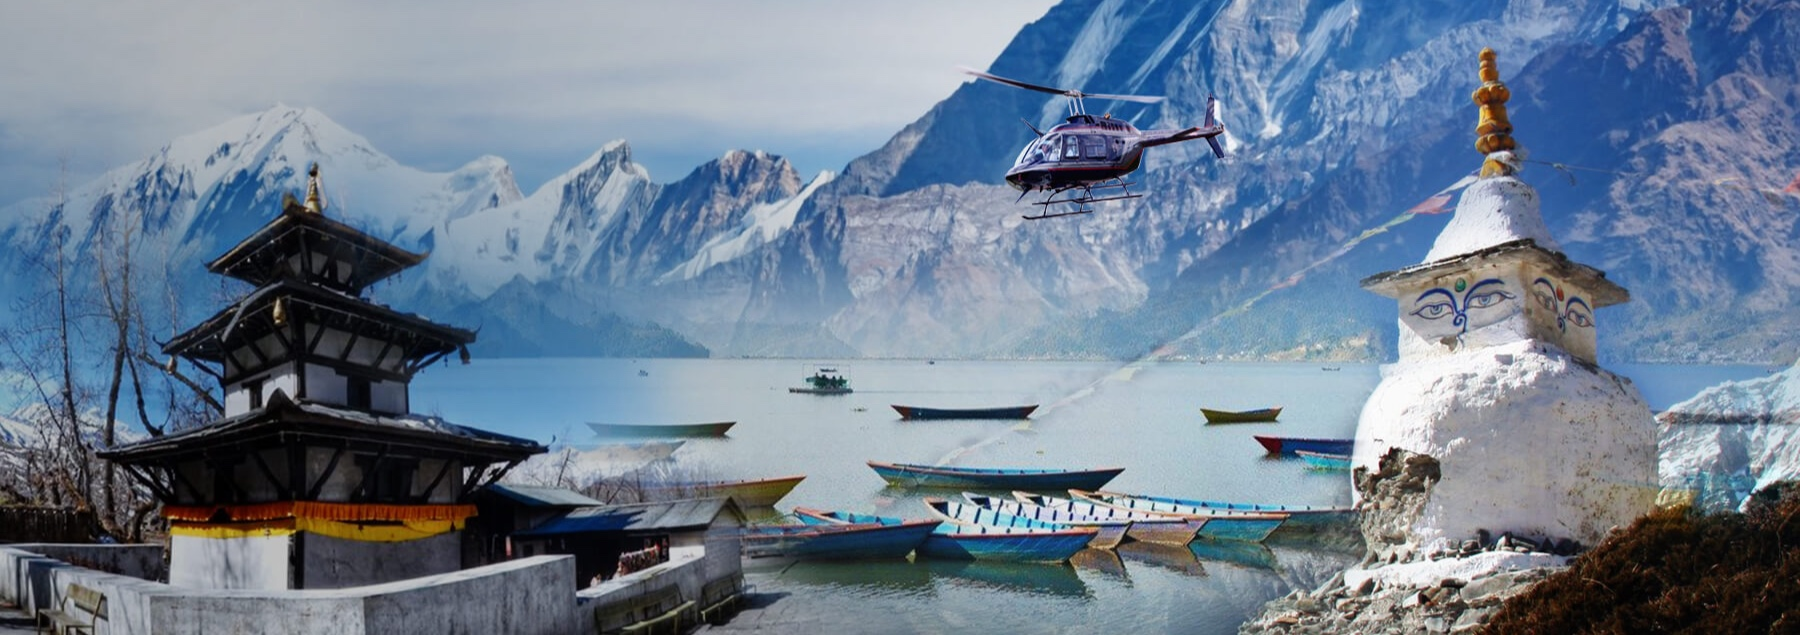 Combined collage images of Pokhara, Annapurna Mountain and Muktinath